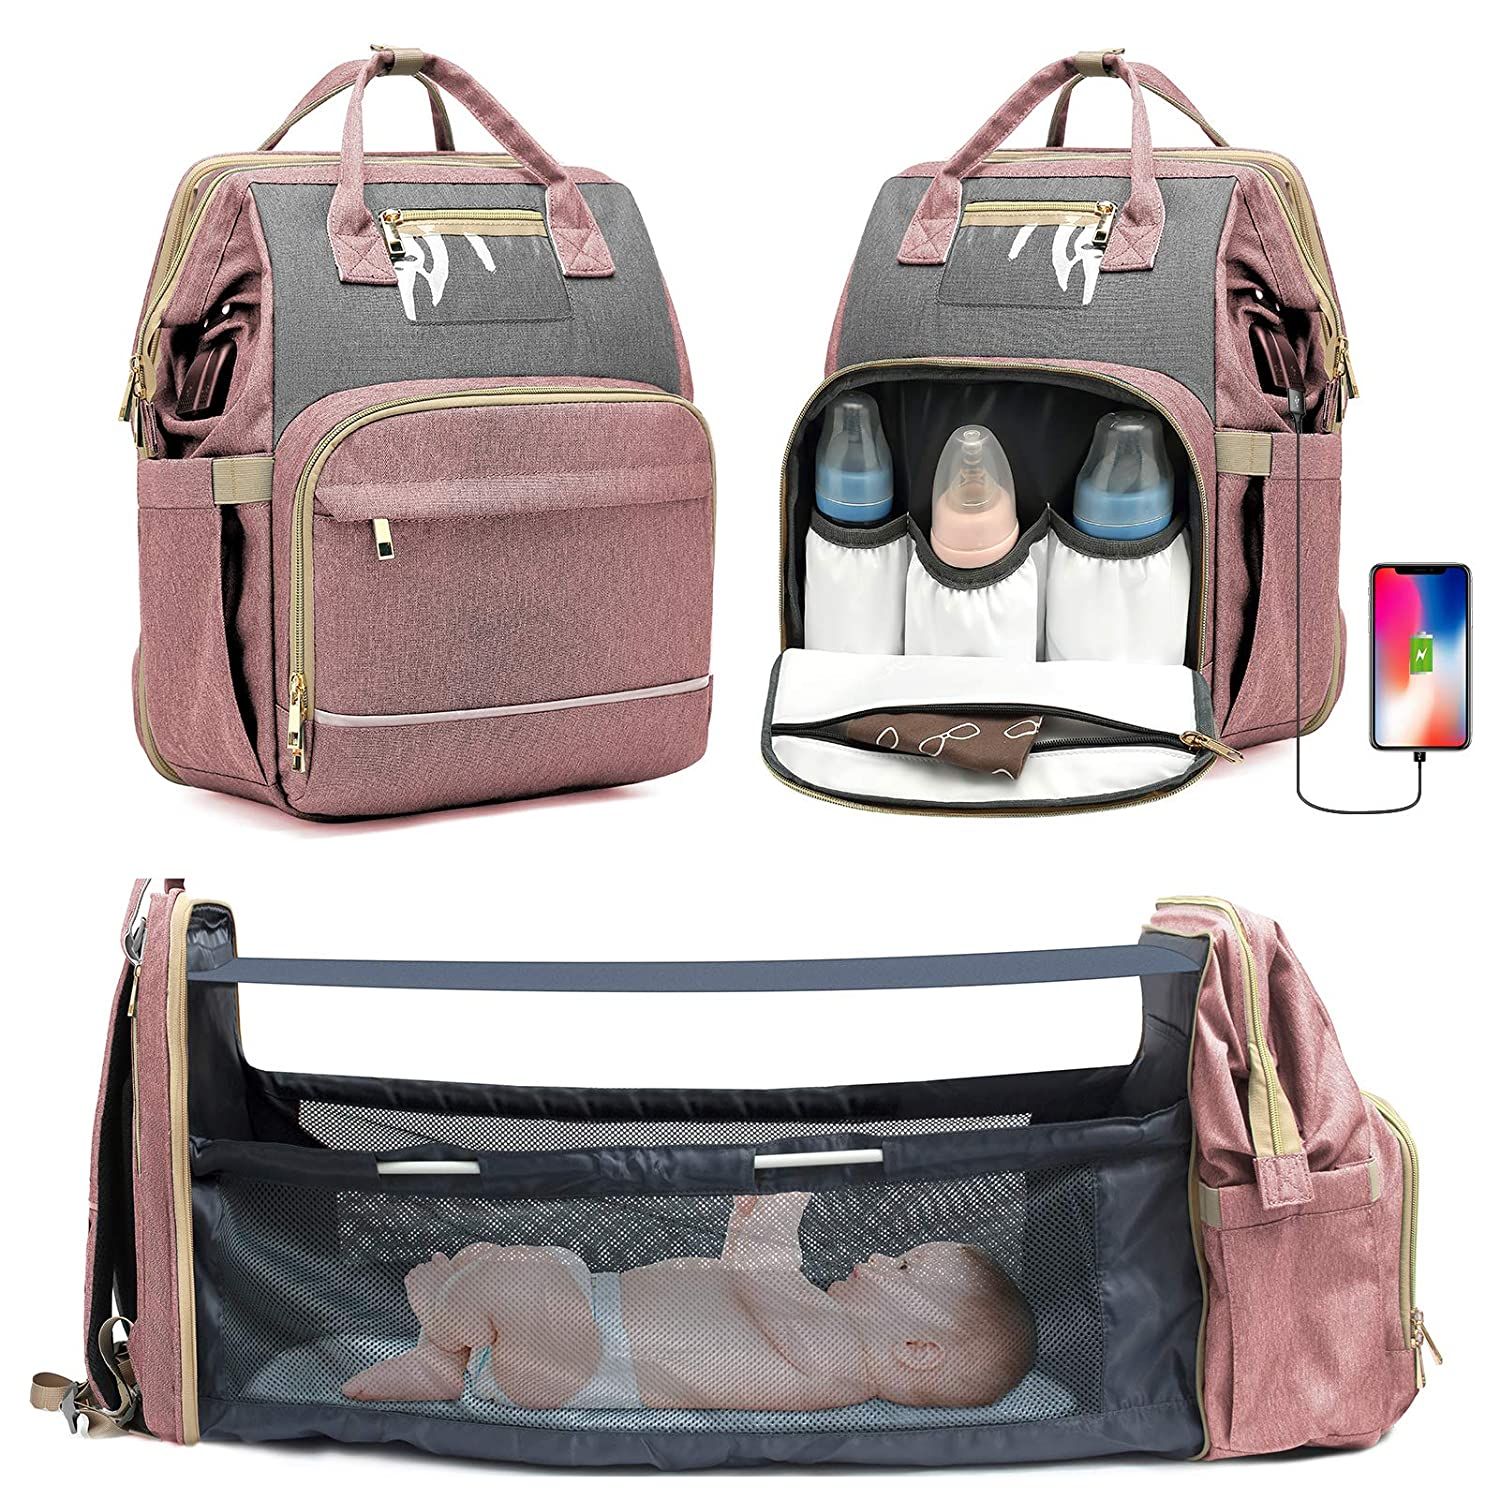 KOVEBBLE Diaper Bag Backpack with Changing Station, Foldable Baby Backpack Diaper Bags for Baby, Boy, Girl, Mom, Dad,Men, Women, 3 in 1 Mommy Bag with USB Charging Port for Travel Picnic Hospital Pink